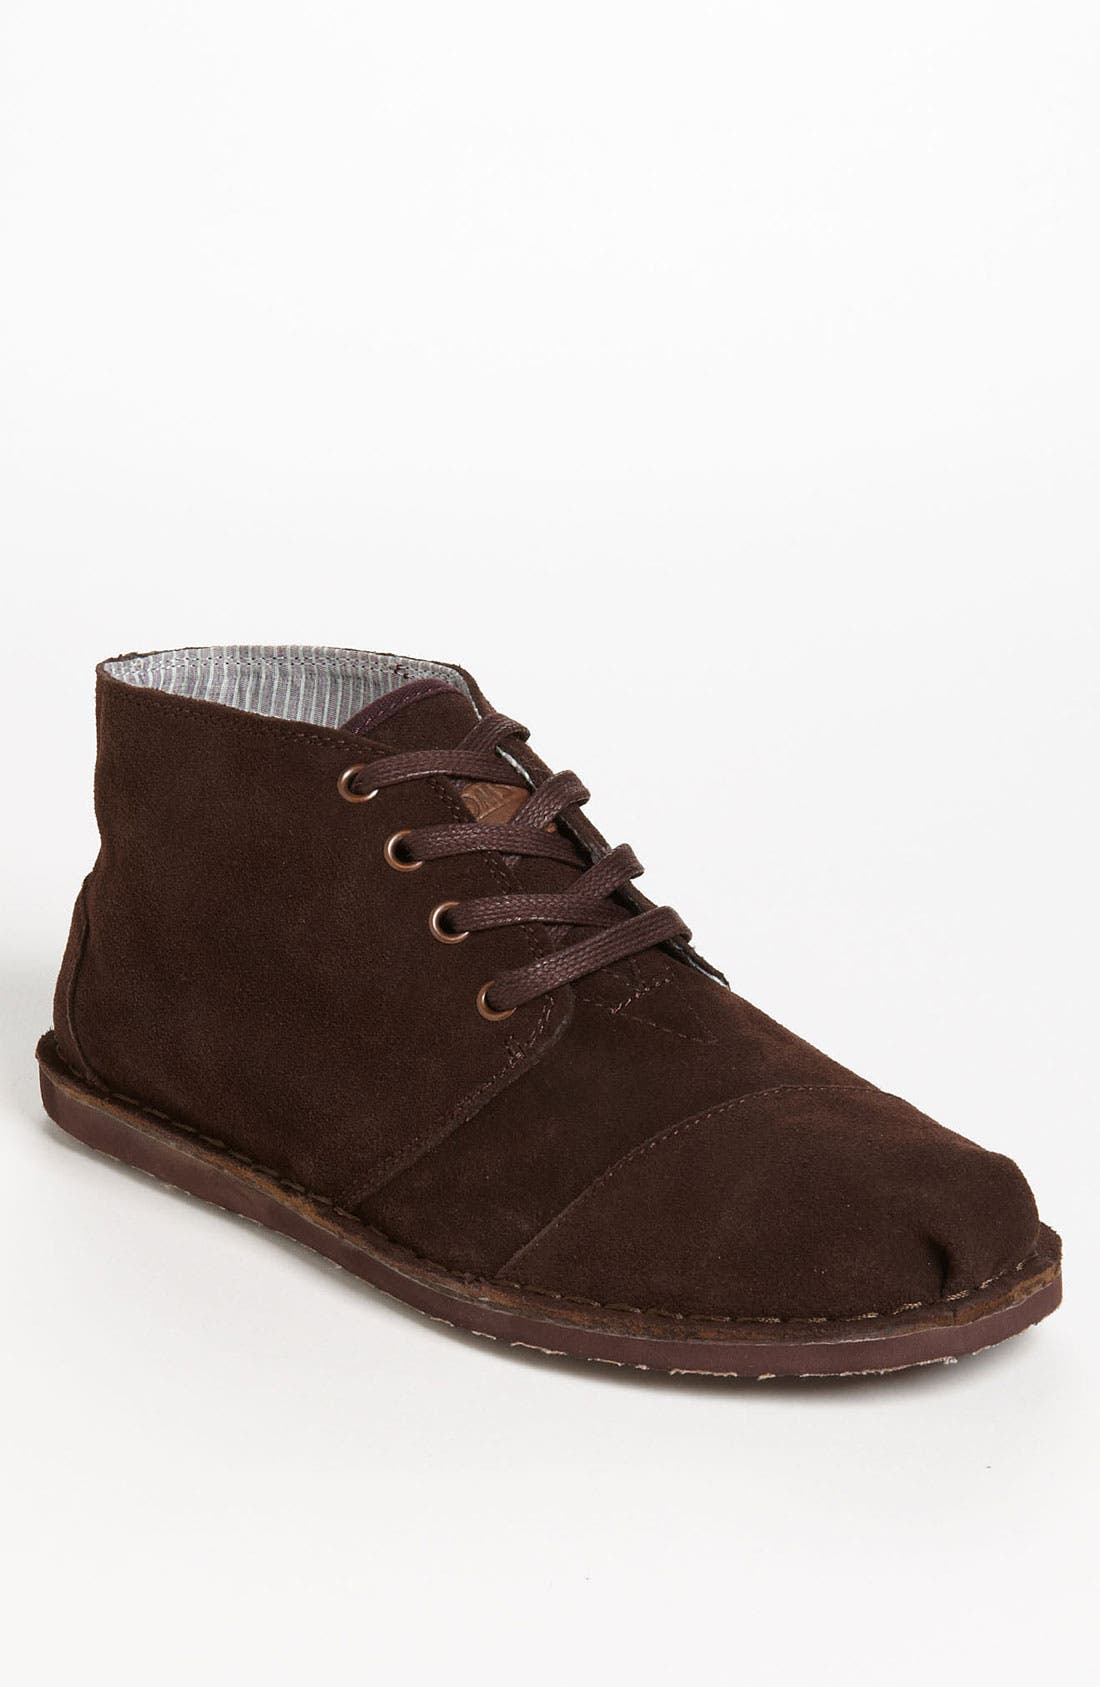 Alternate Image 1 Selected - TOMS 'Botas - Desert' Suede Chukka Boot (Men)